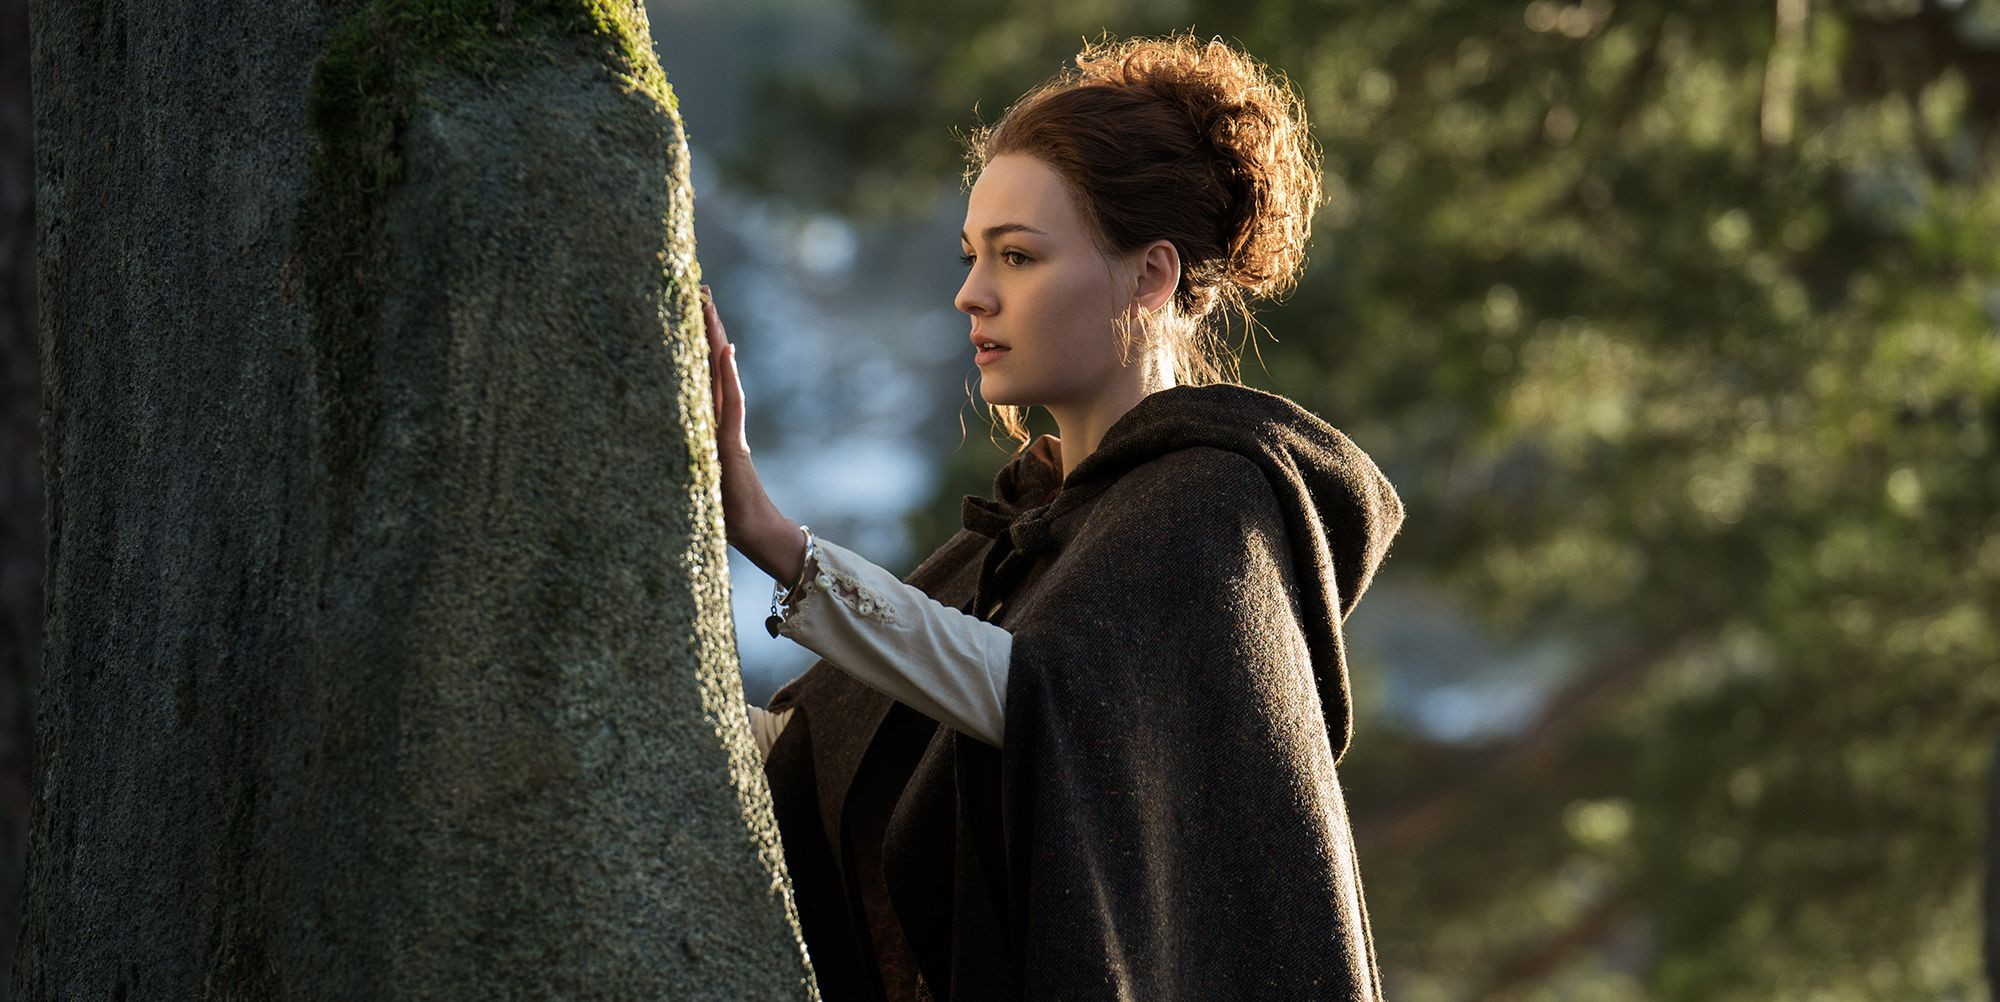 'Outlander' Just Aired the Best Episode of the Season So Far